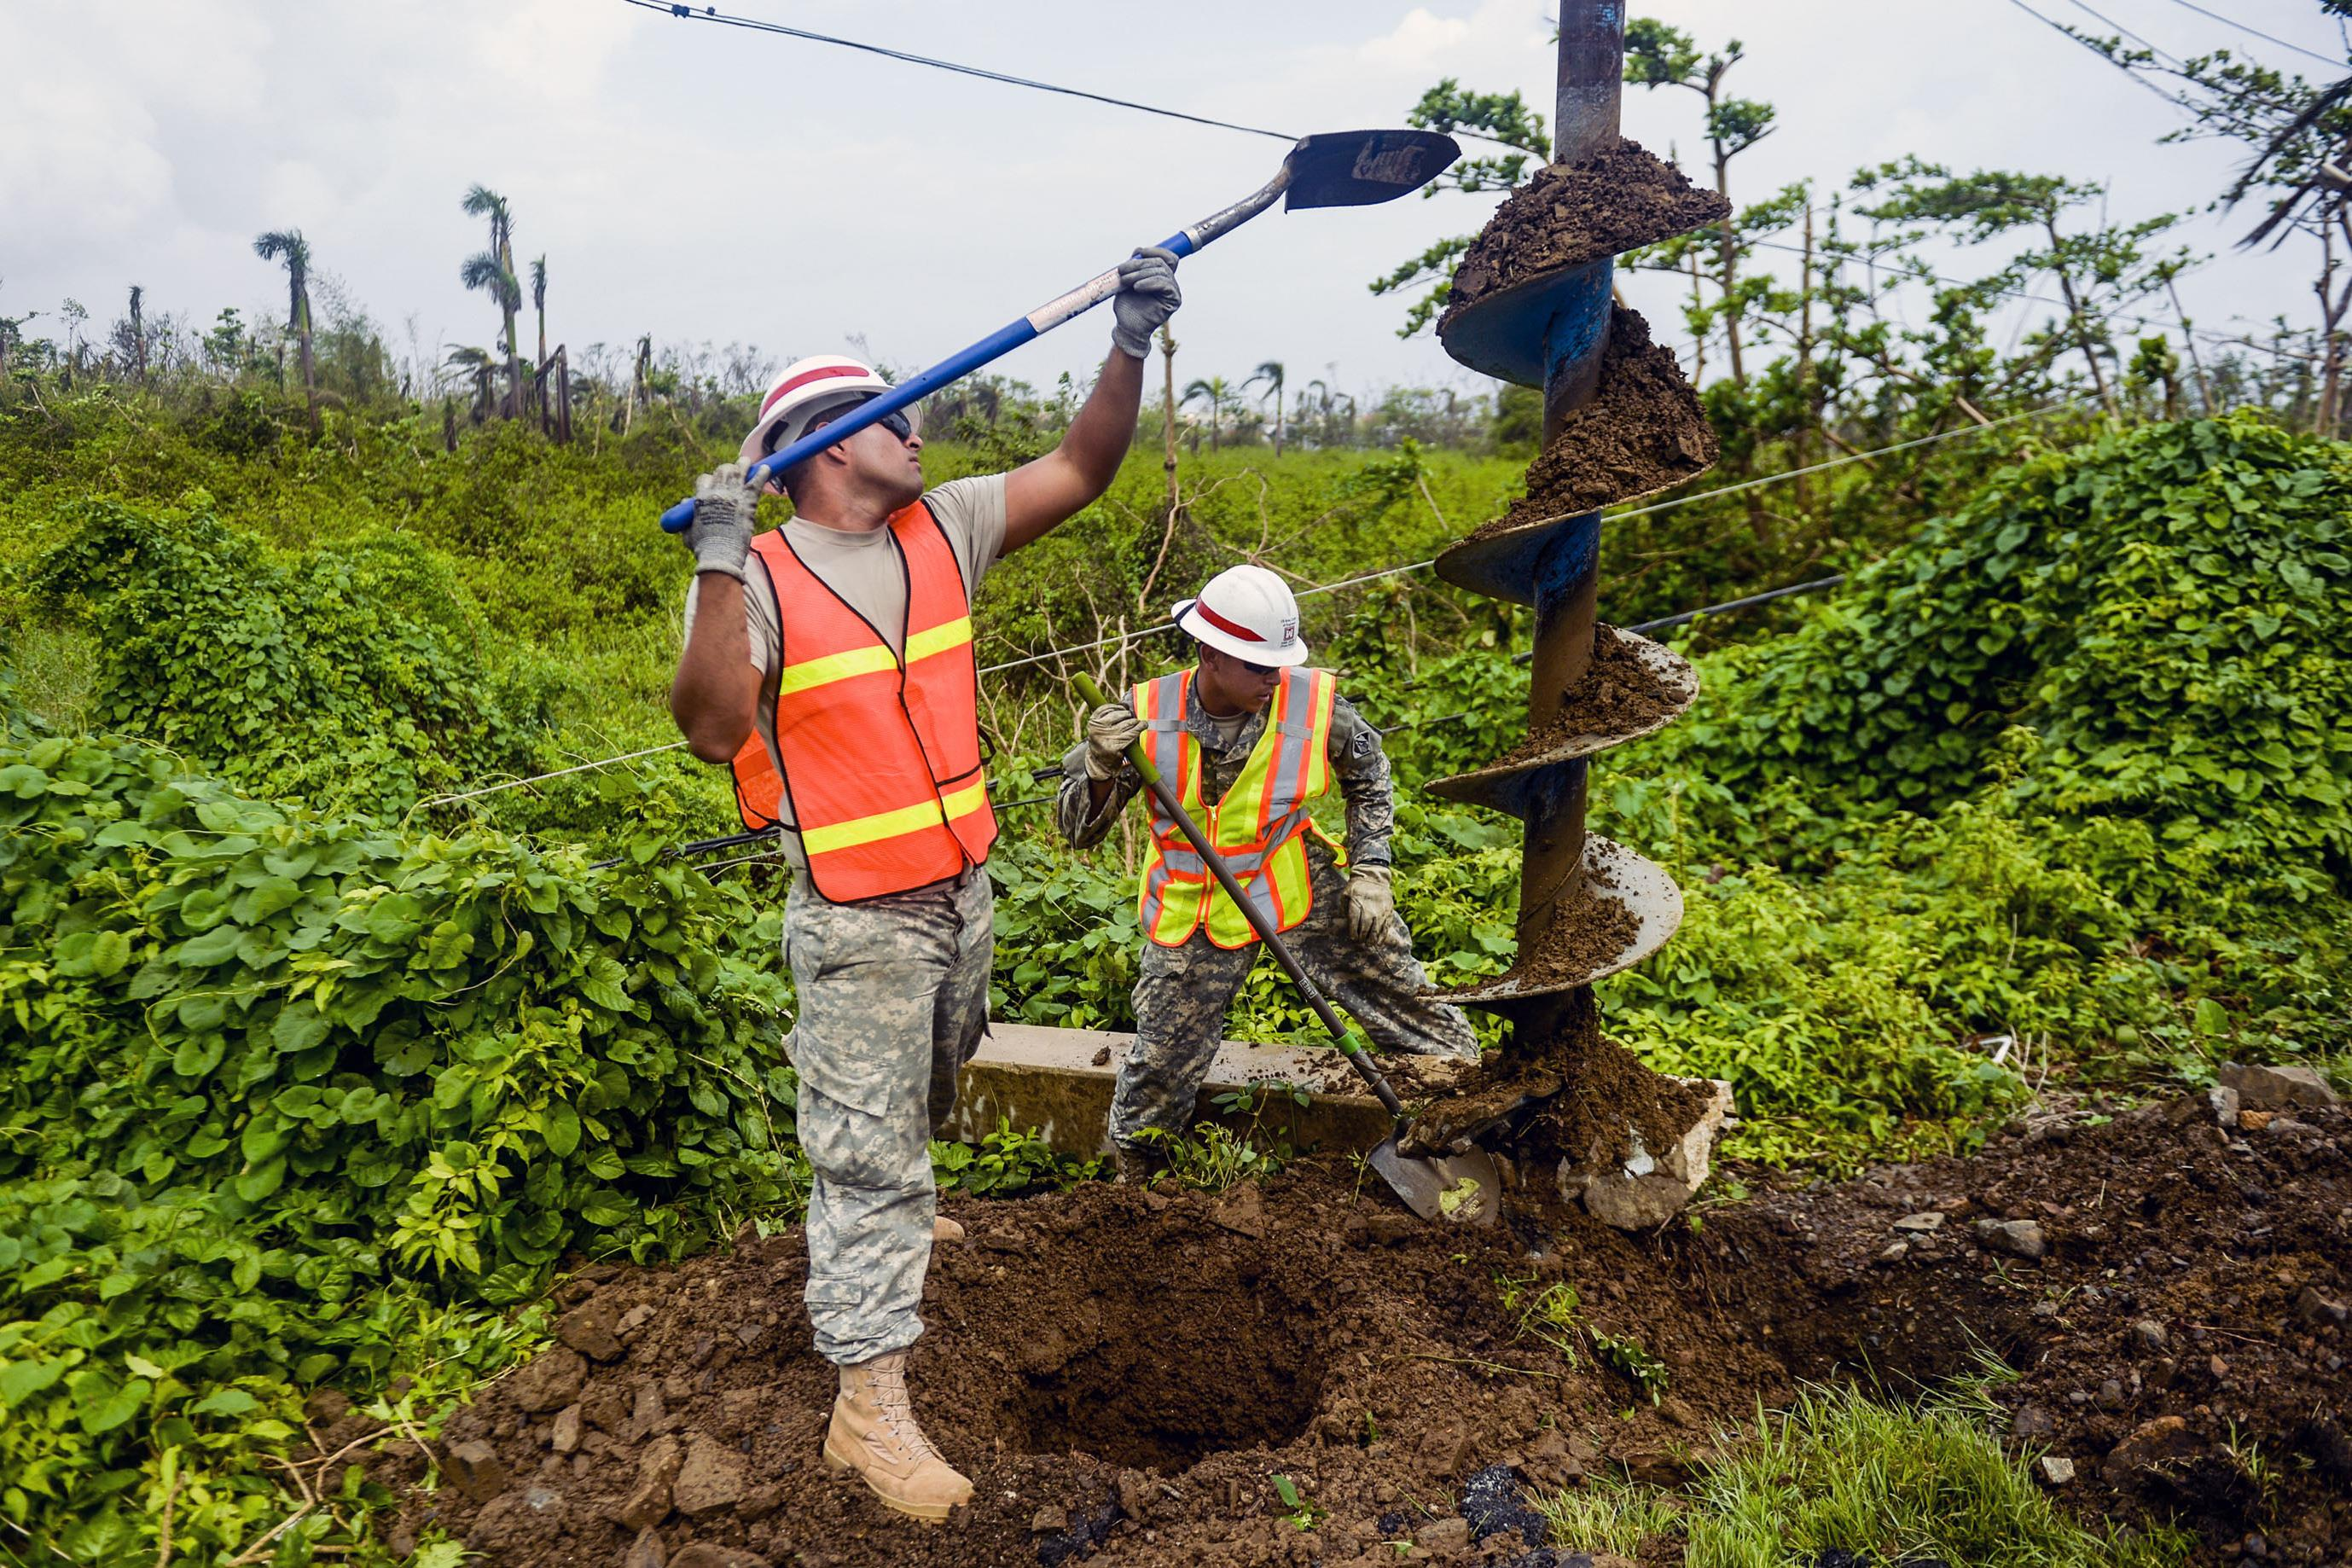 U.S. NORTHERN COMMAND'S SUPPORT TO PUERTO RICO